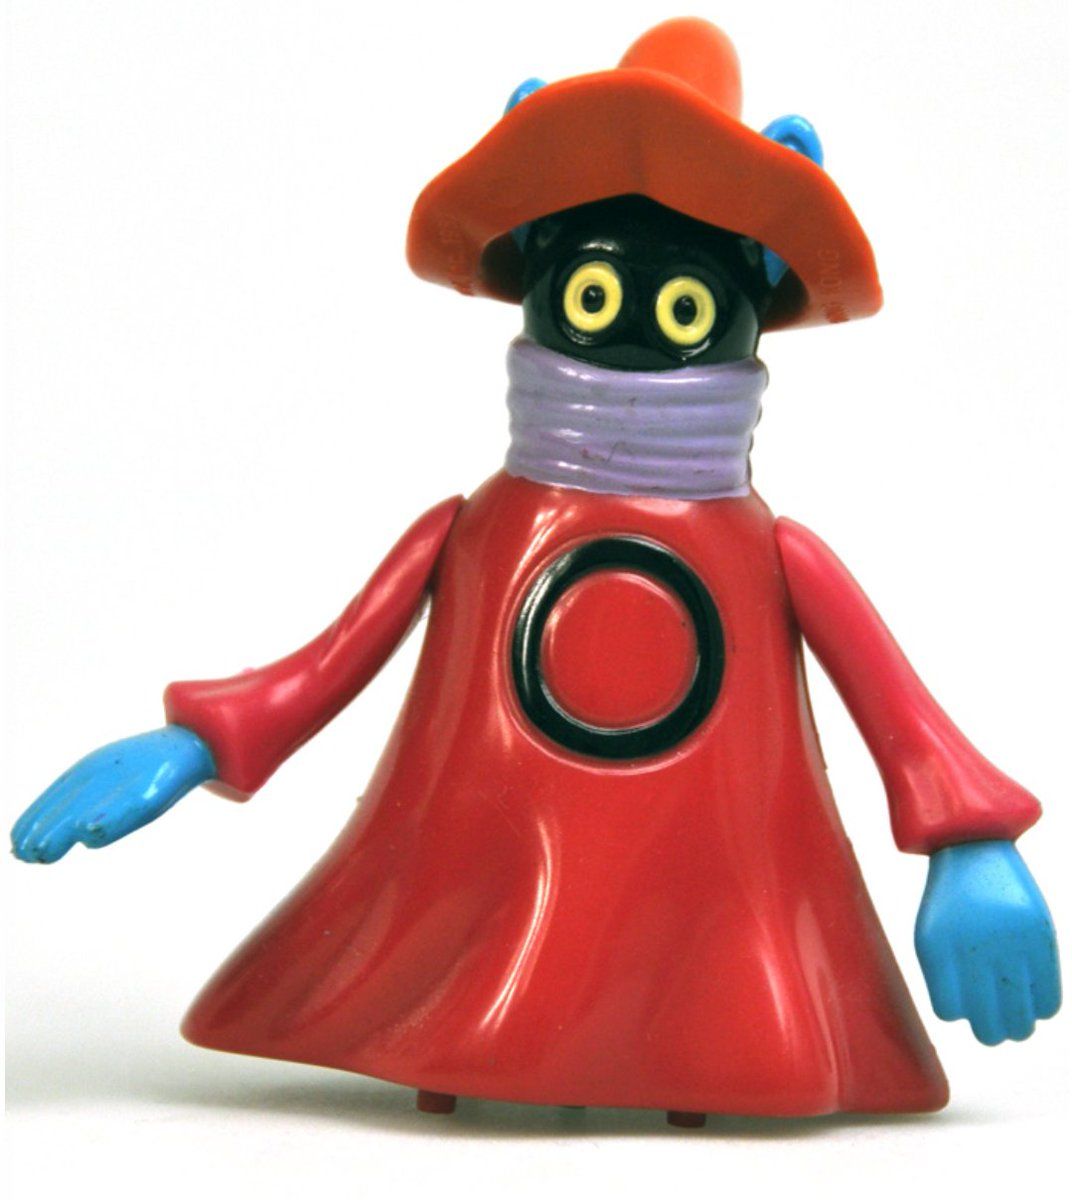 @meakoopa I'm more of an orko, tbh